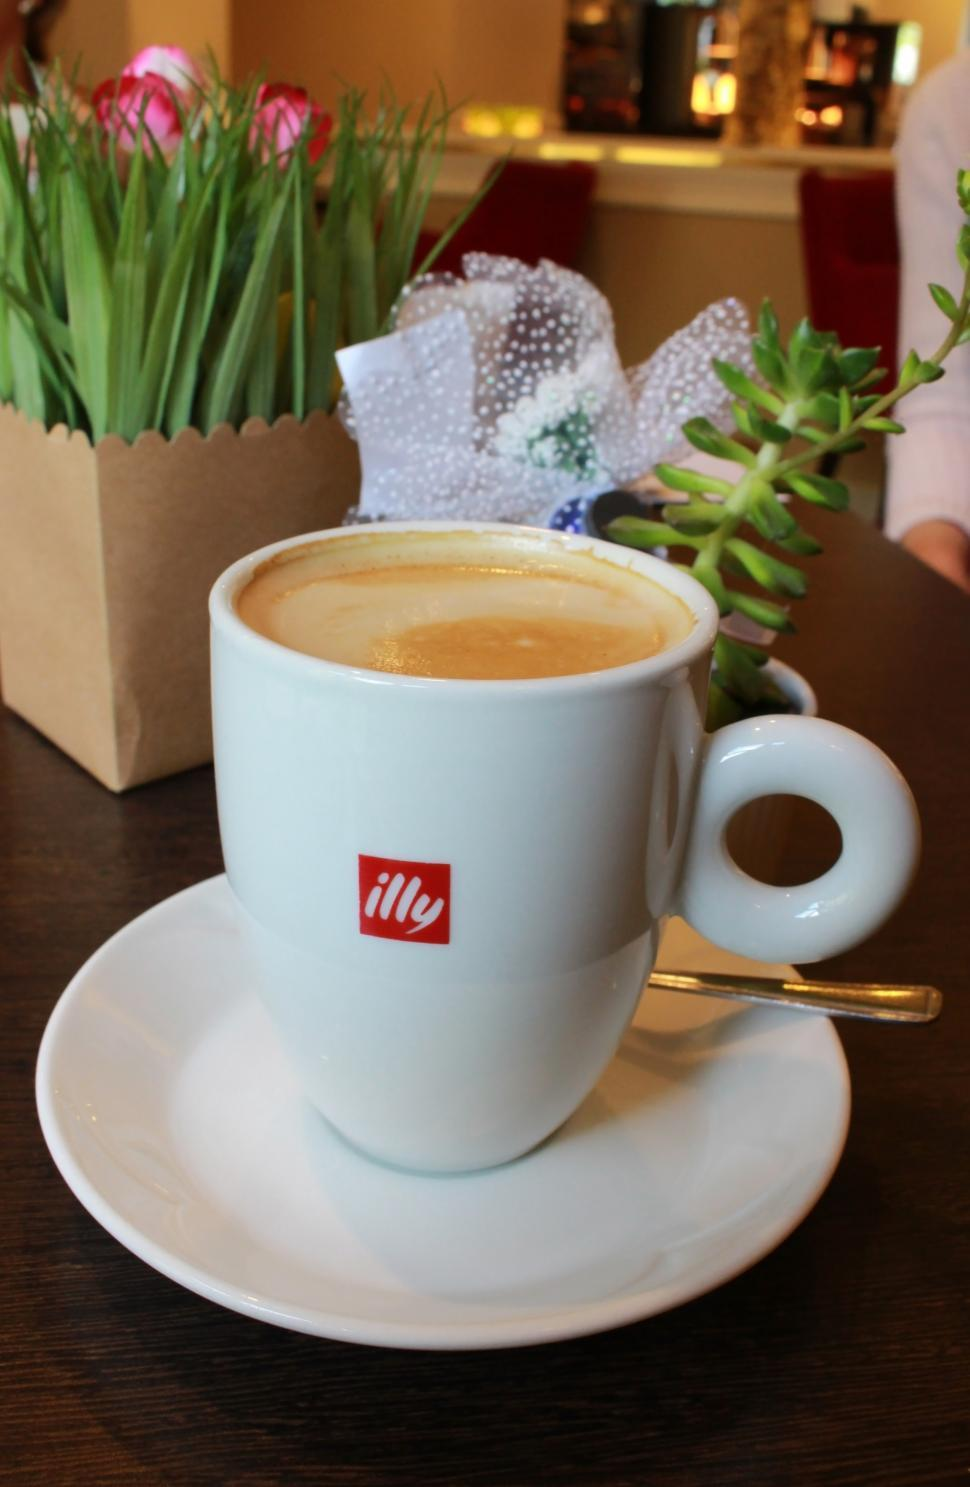 Download Free Stock HD Photo of Cup of Illy branded coffee  Online